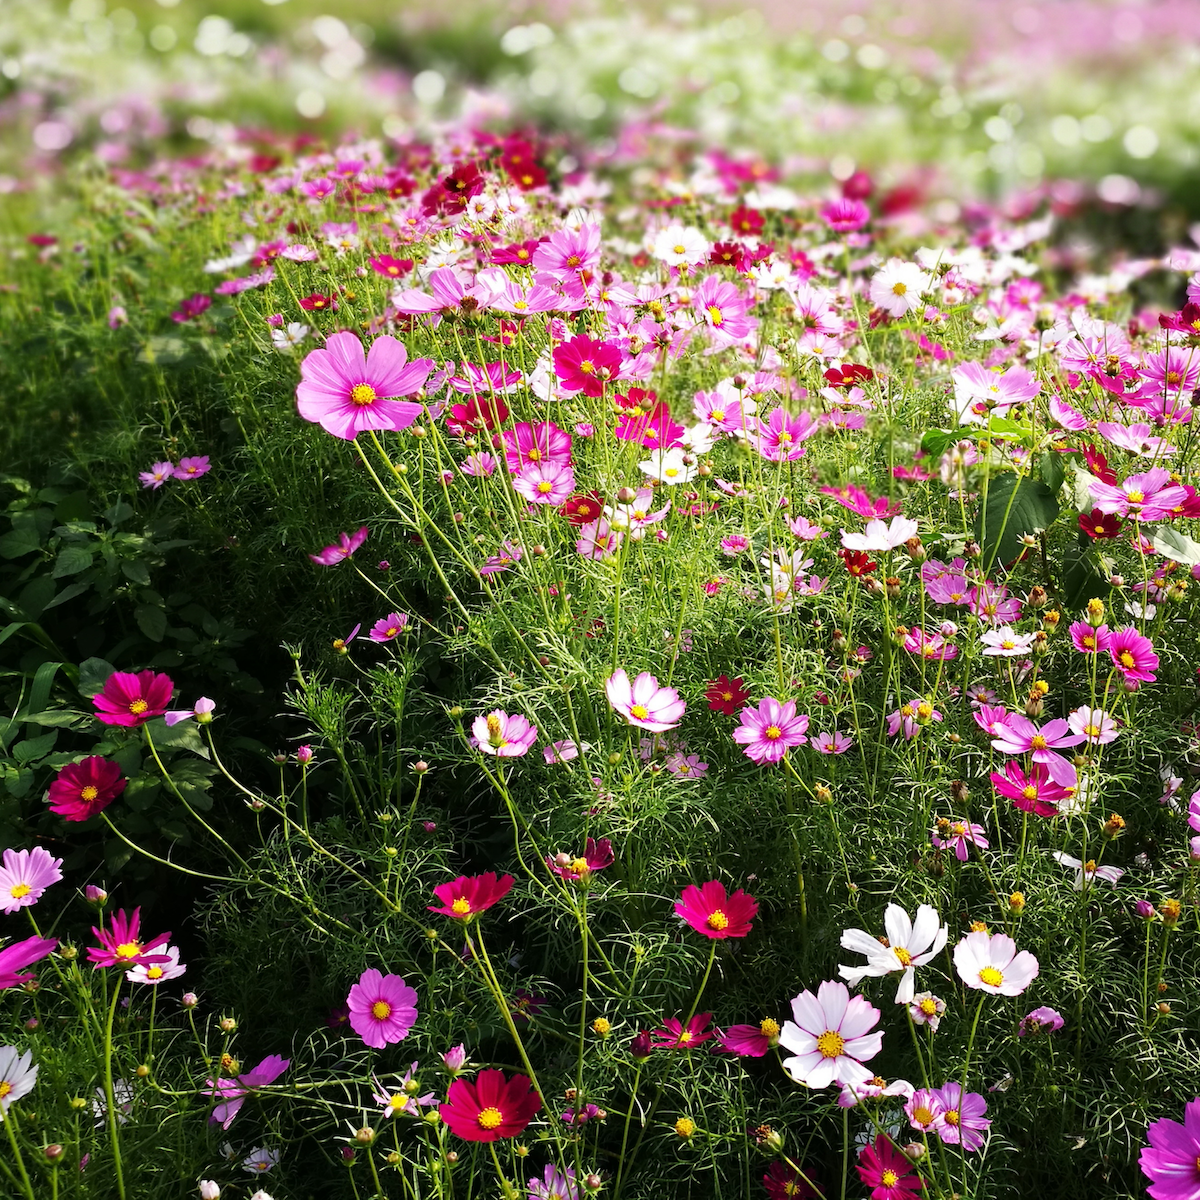 Pink Cosmos Flowers Growing at Flower Farm